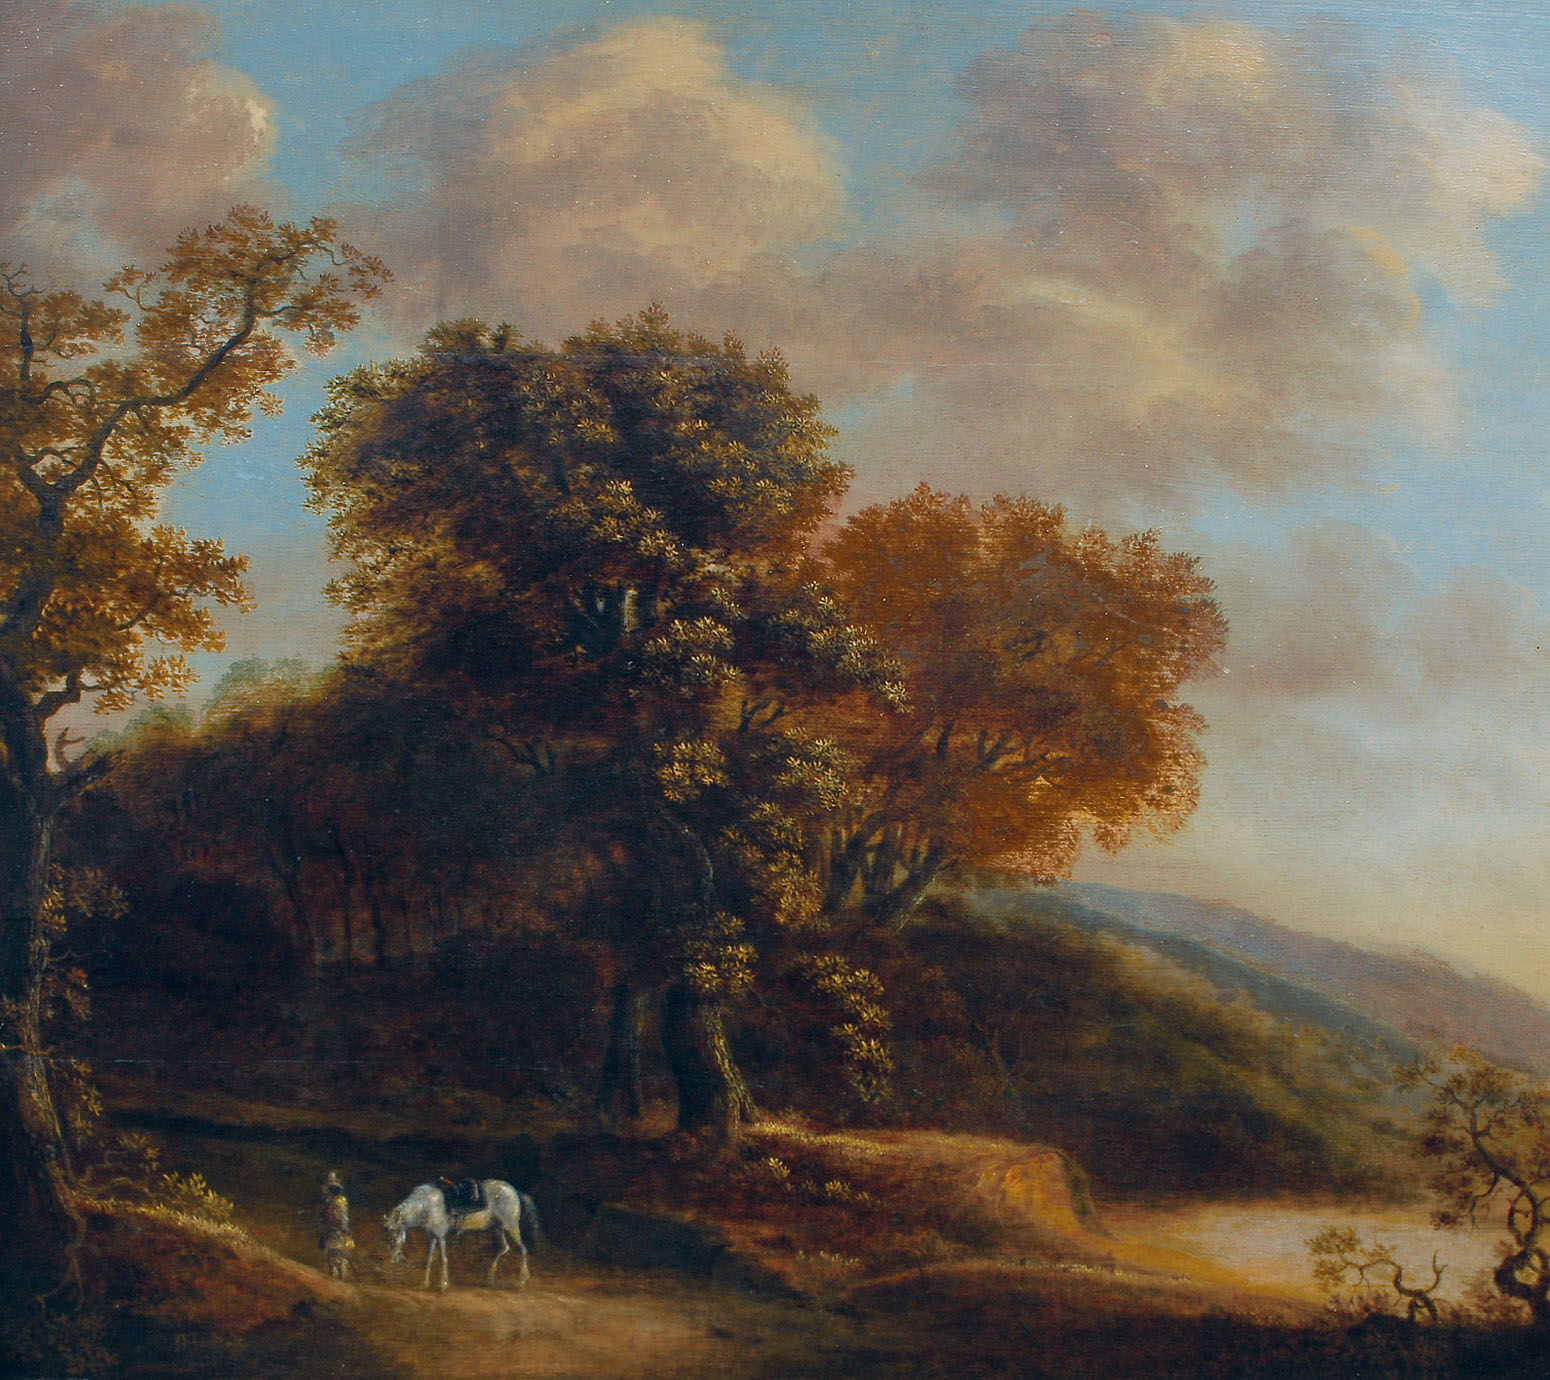 Landscape with horseman